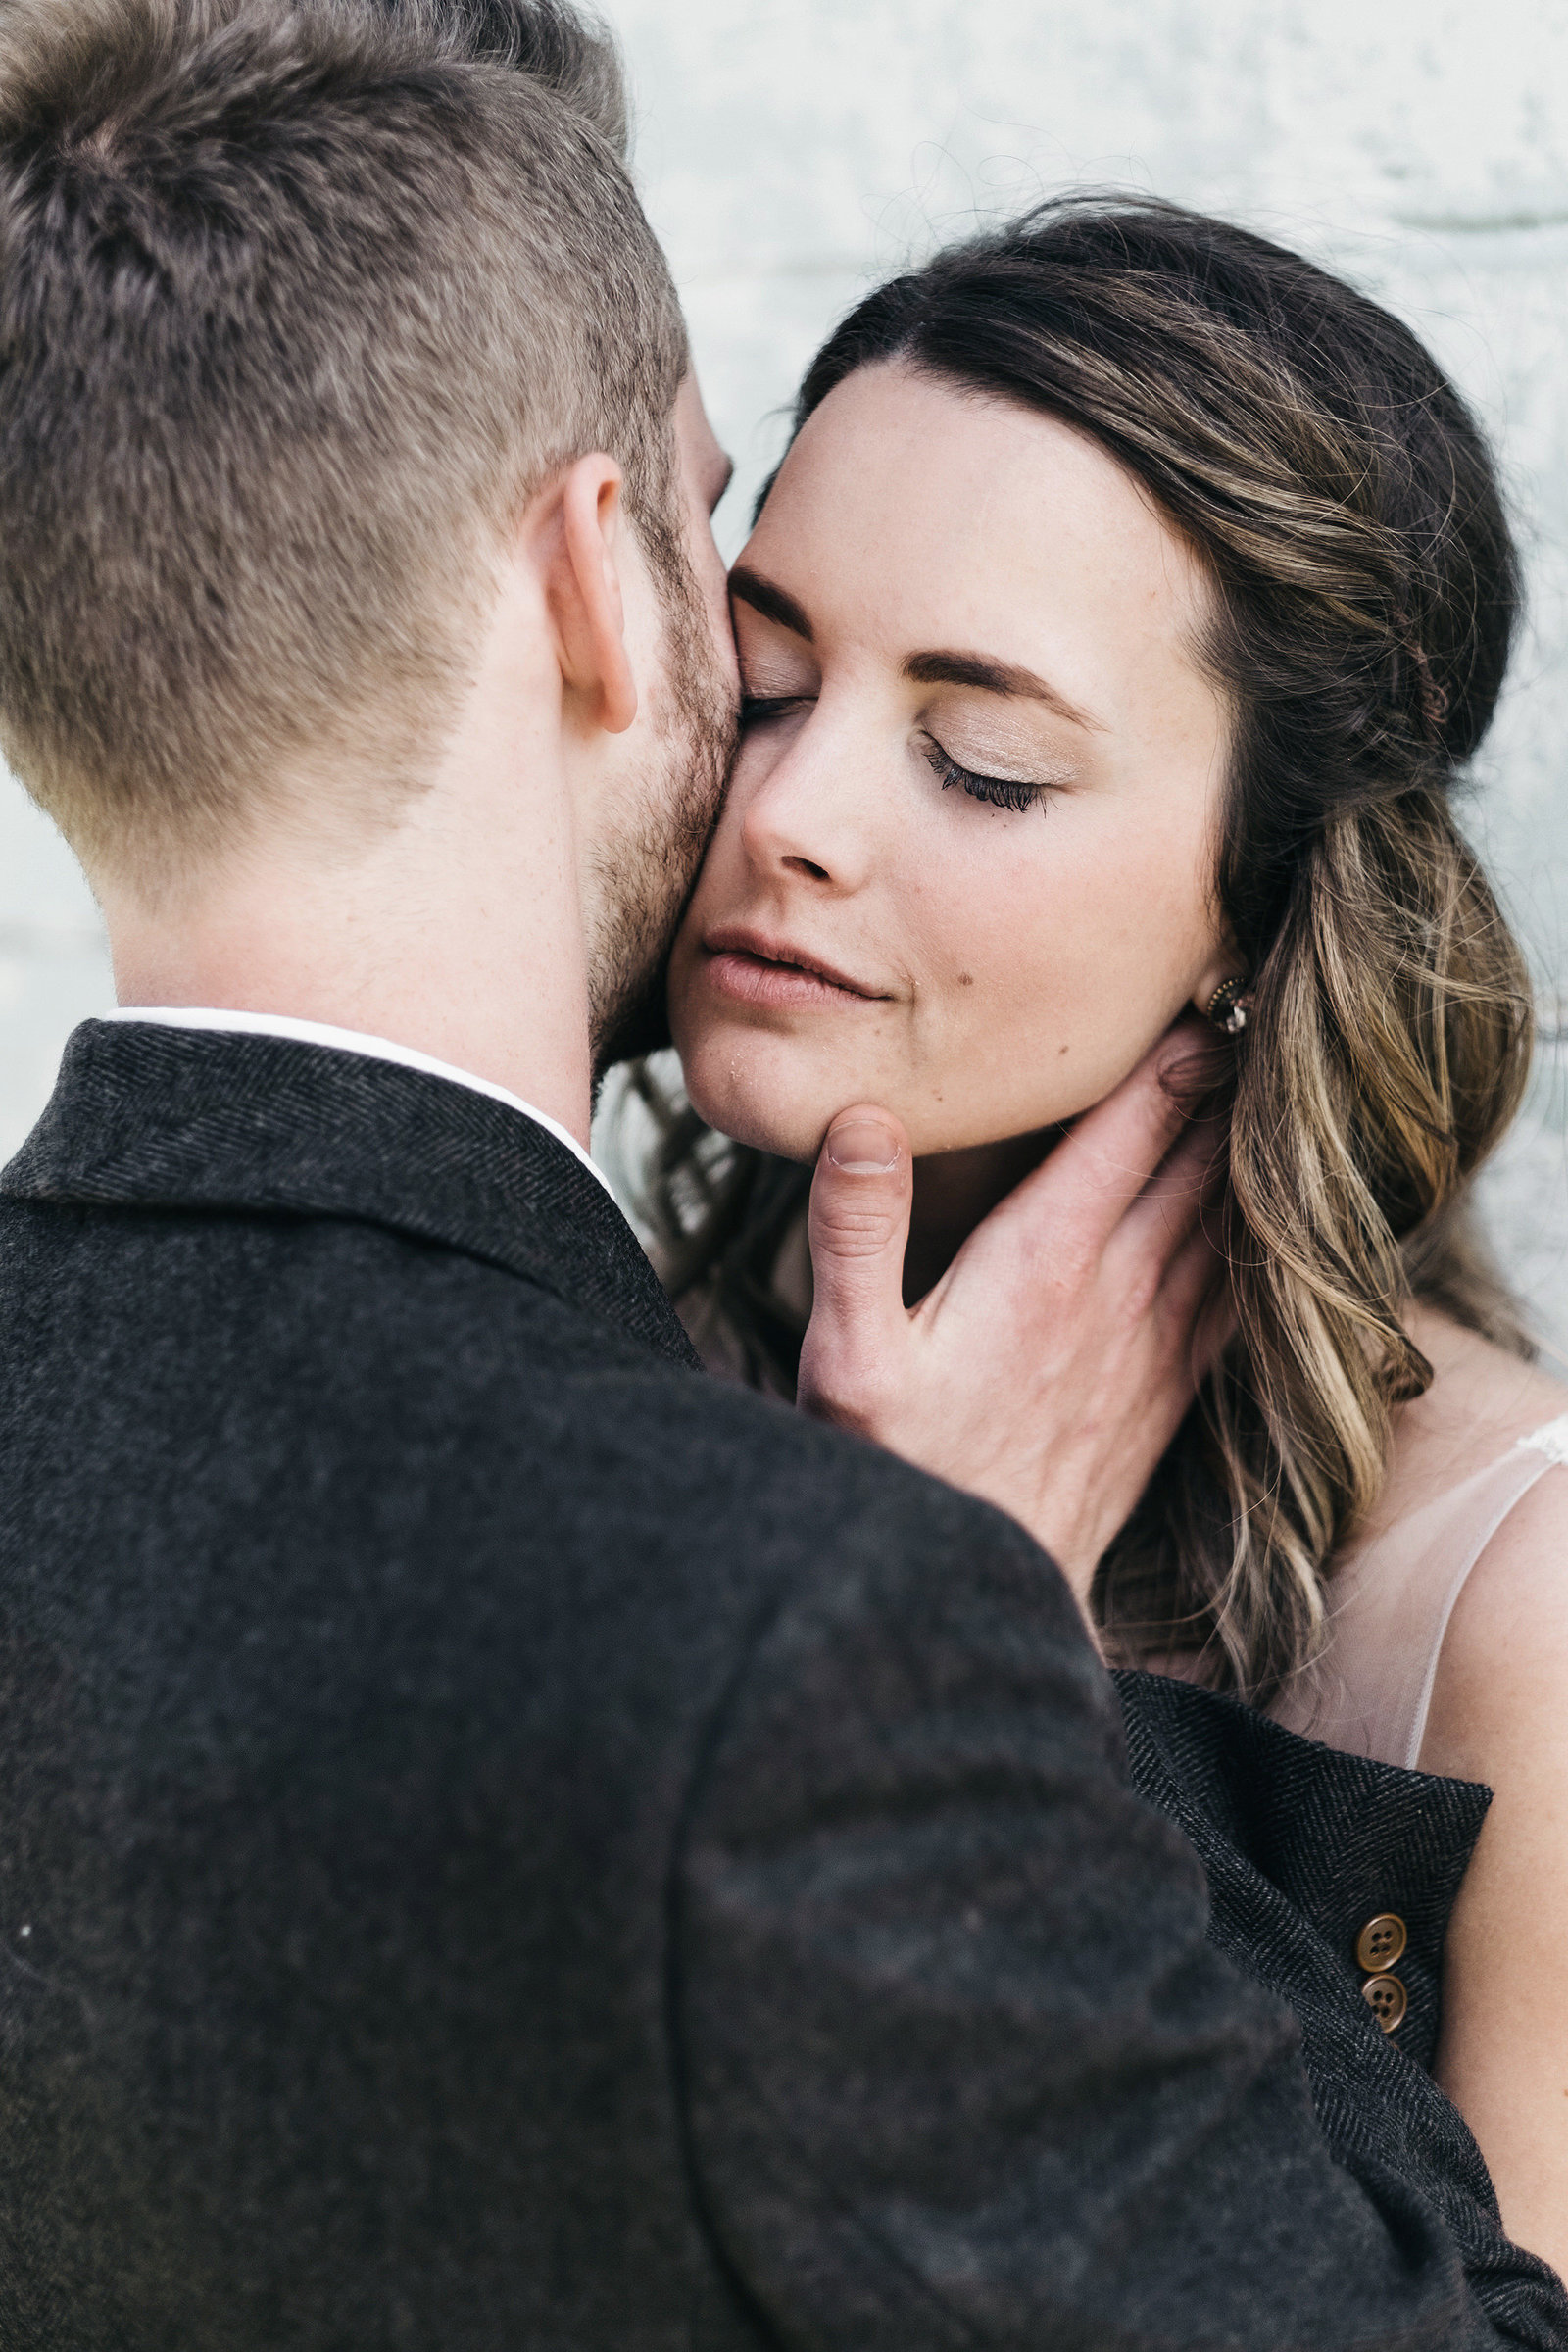 athena-and-camron-seattle-wedding-photographer-dairyland-snohomish-rustic-barn-wedding-flowers-styling-inspiration-lauren-madison-46